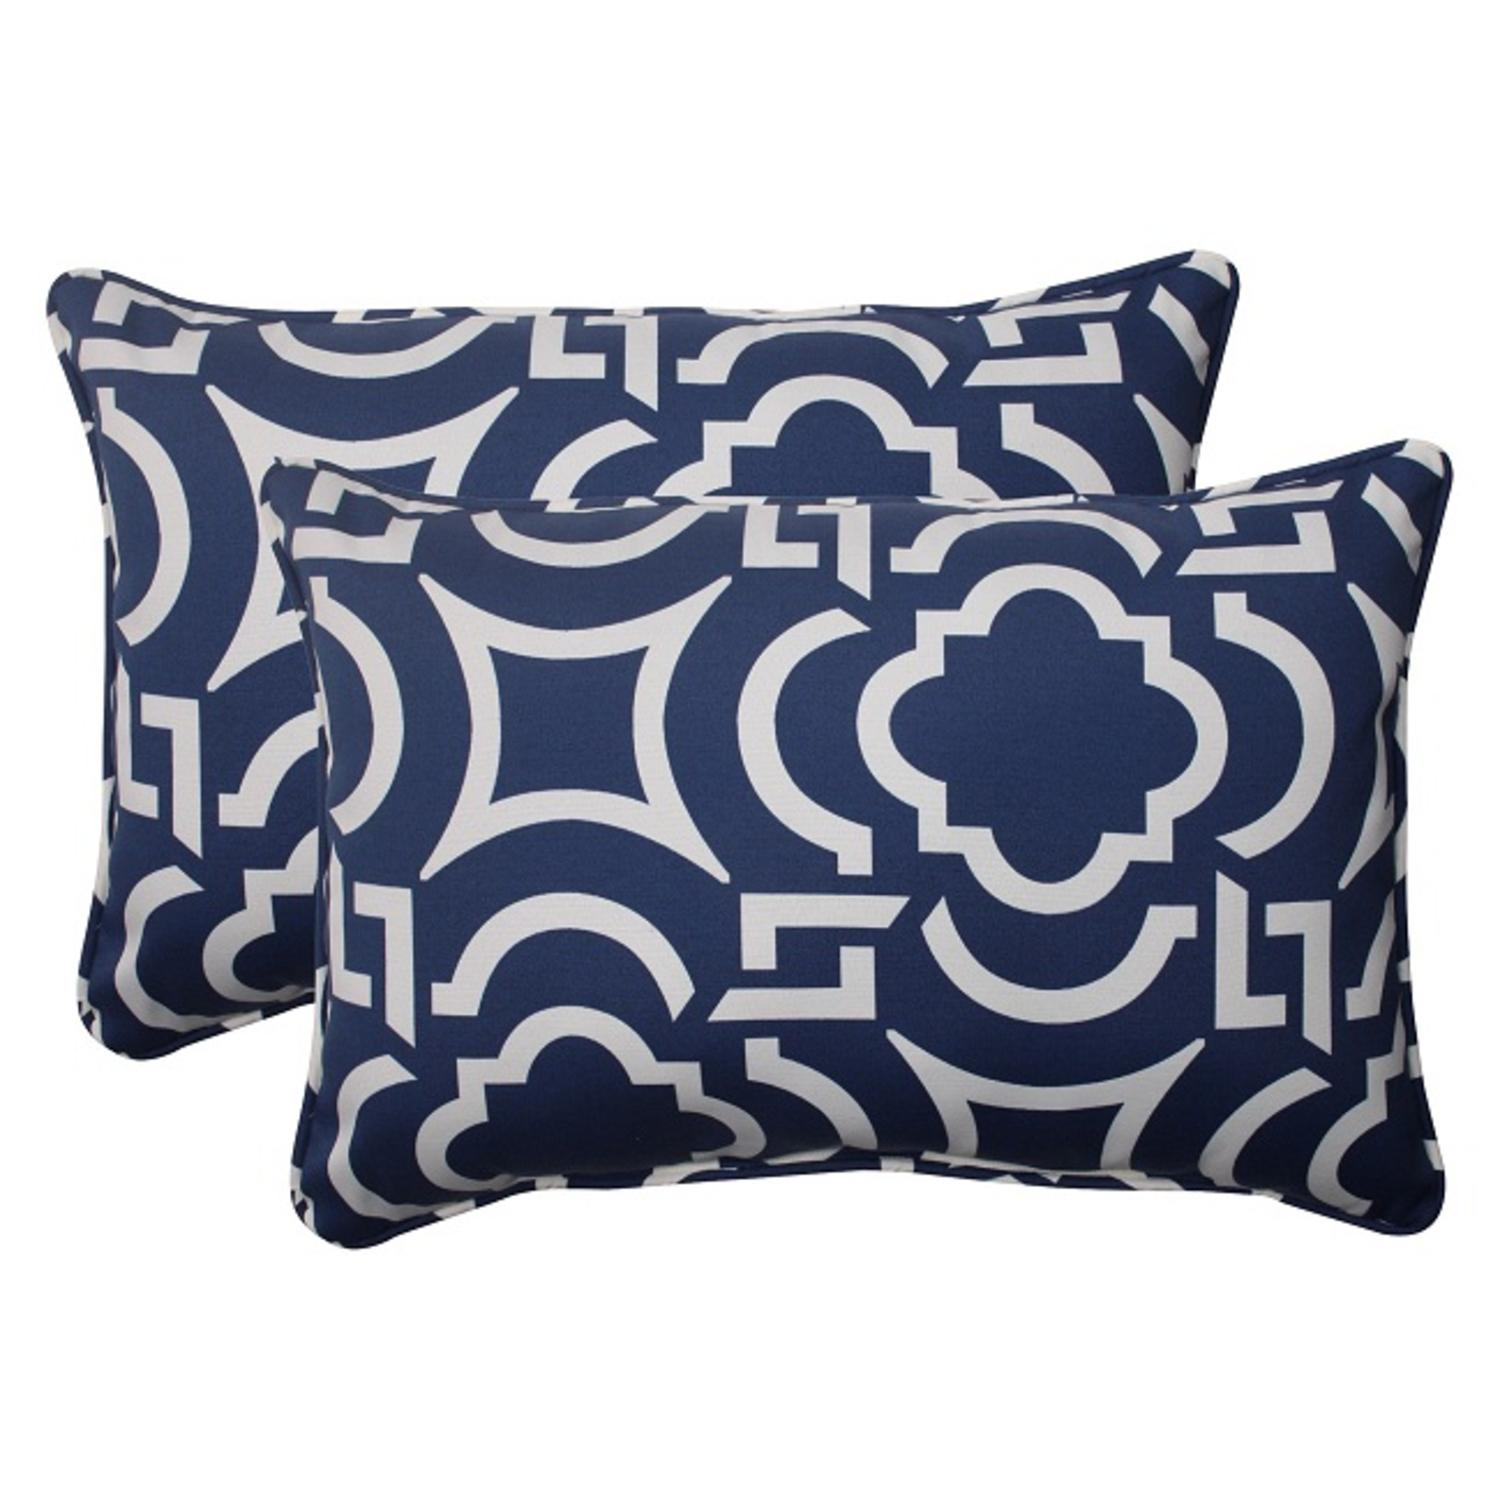 Set of 2 Geometric Navy Blue Sky Outdoor Rectangular Corded Throw Pillows 24.5""